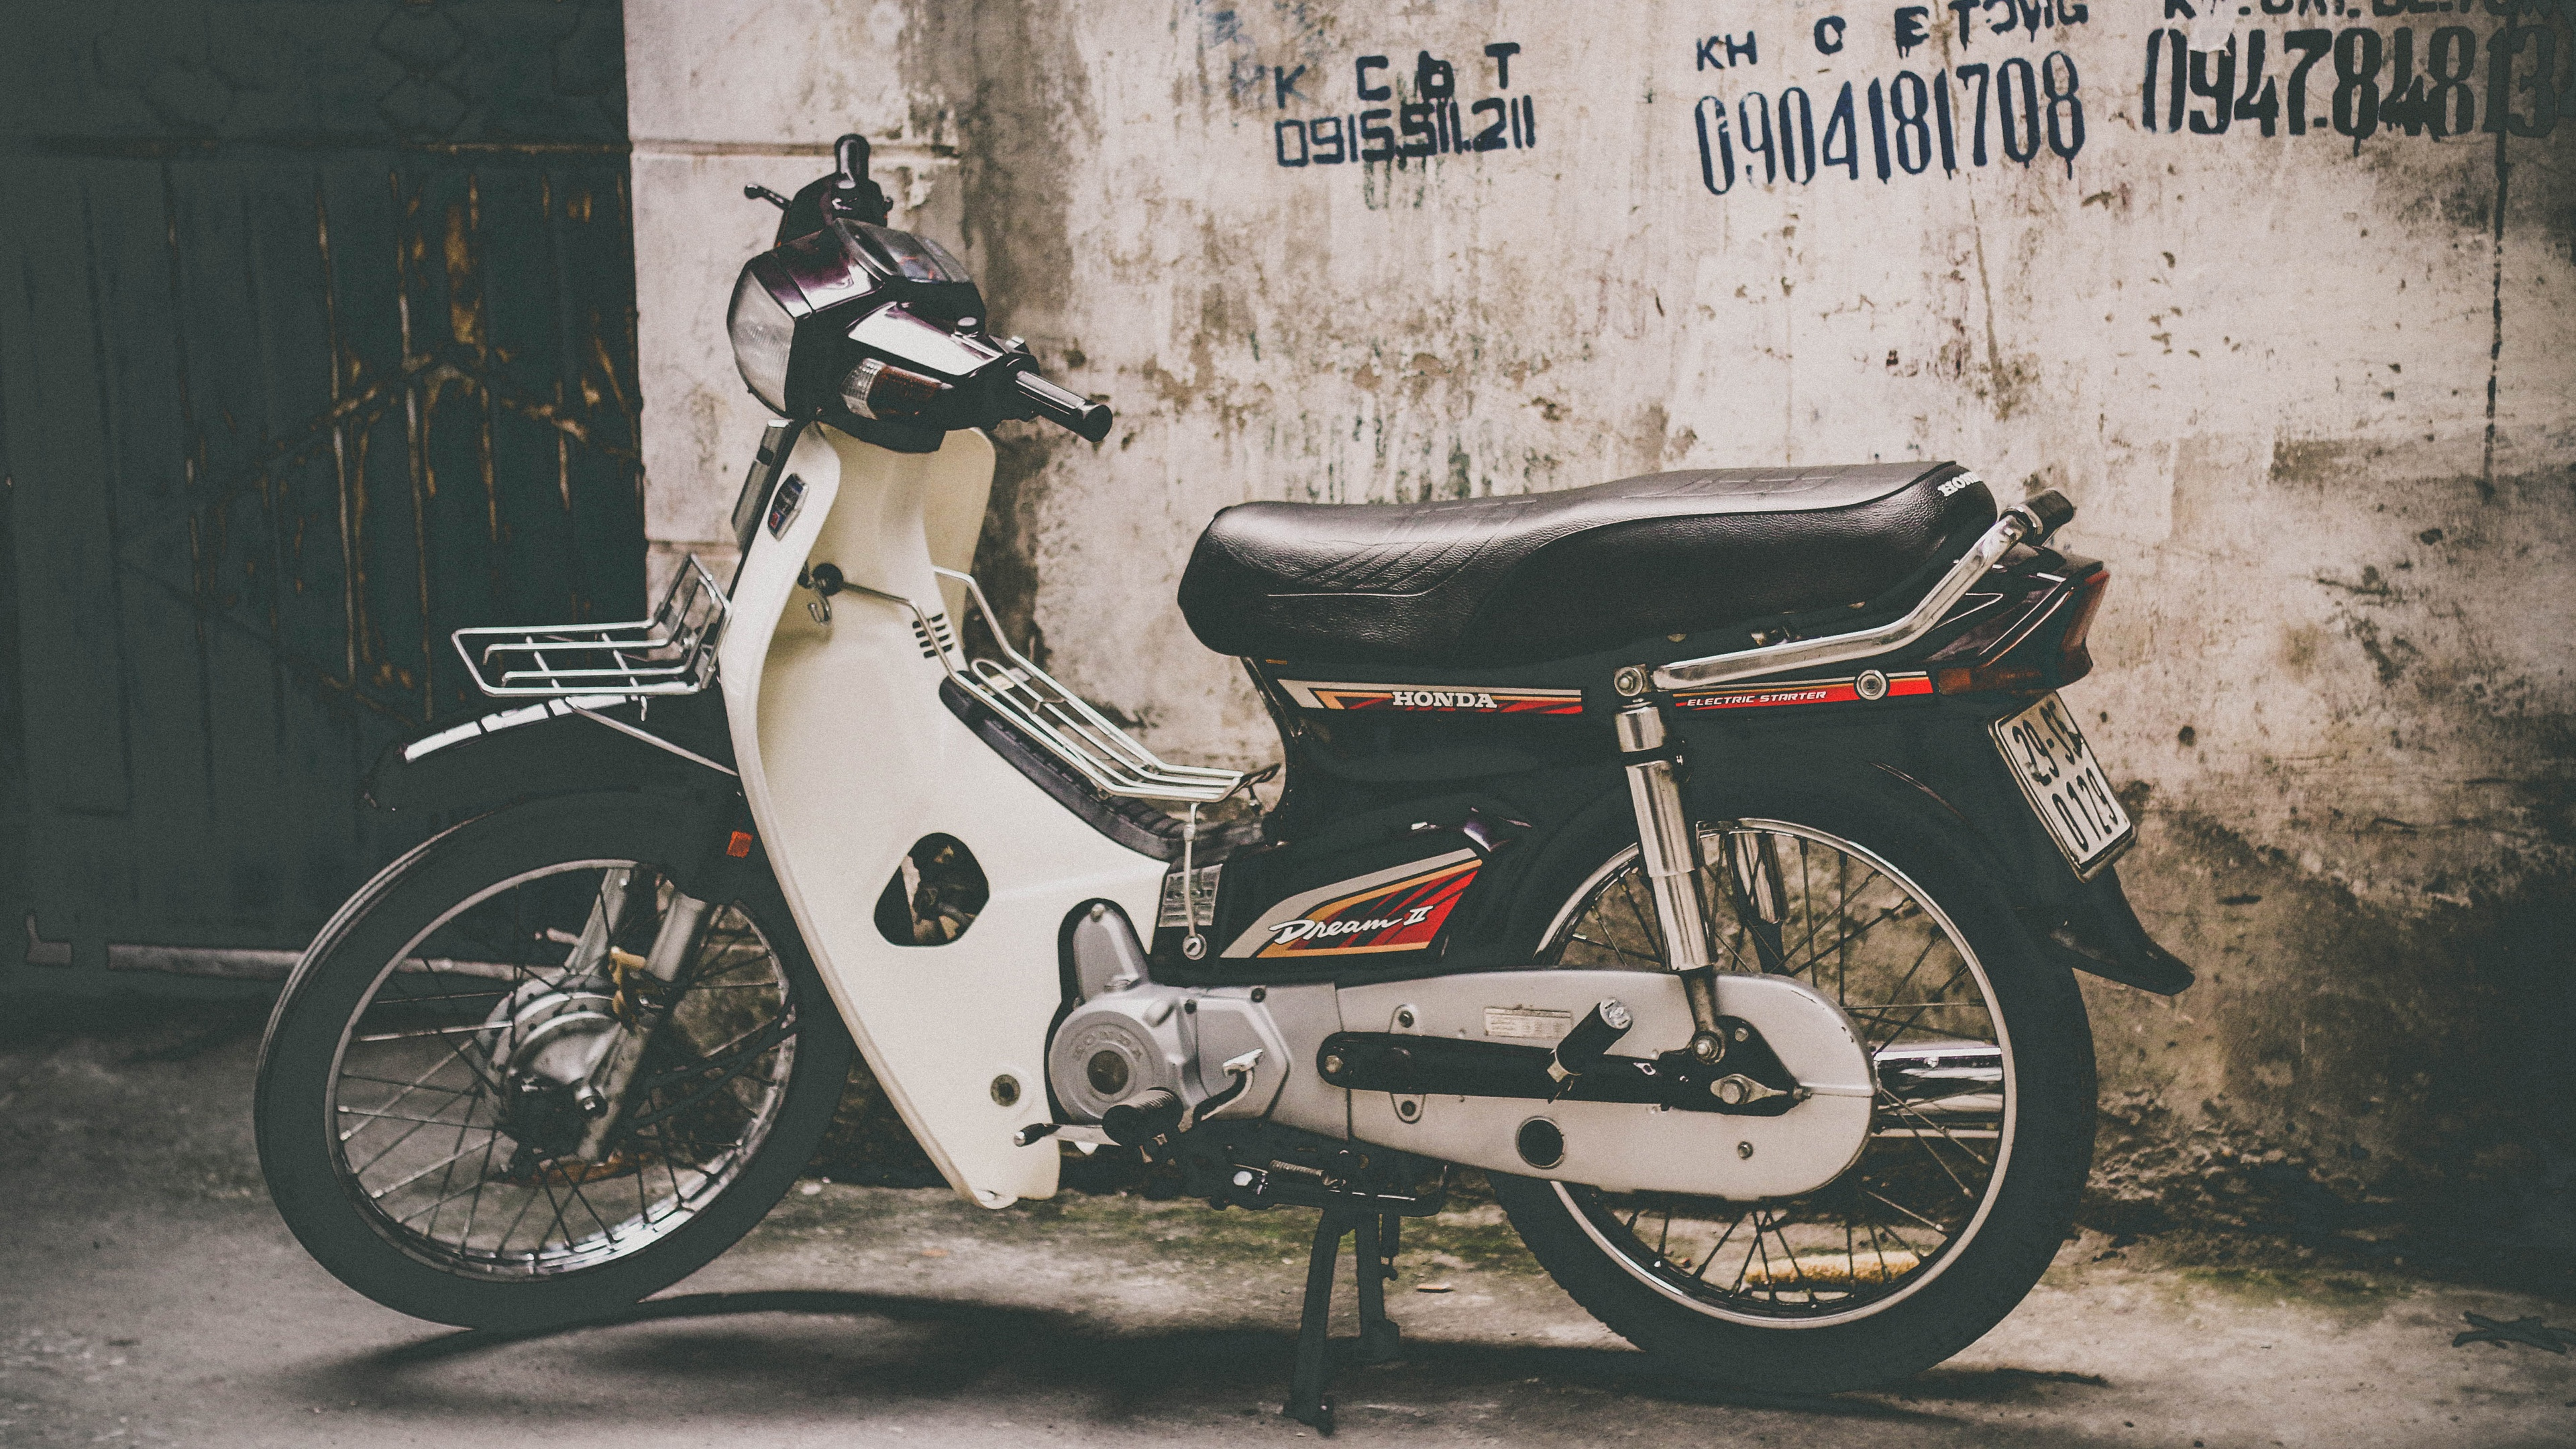 Wallpaper Honda Motorcycle Side View 3840x2160 Uhd 4k Picture Image